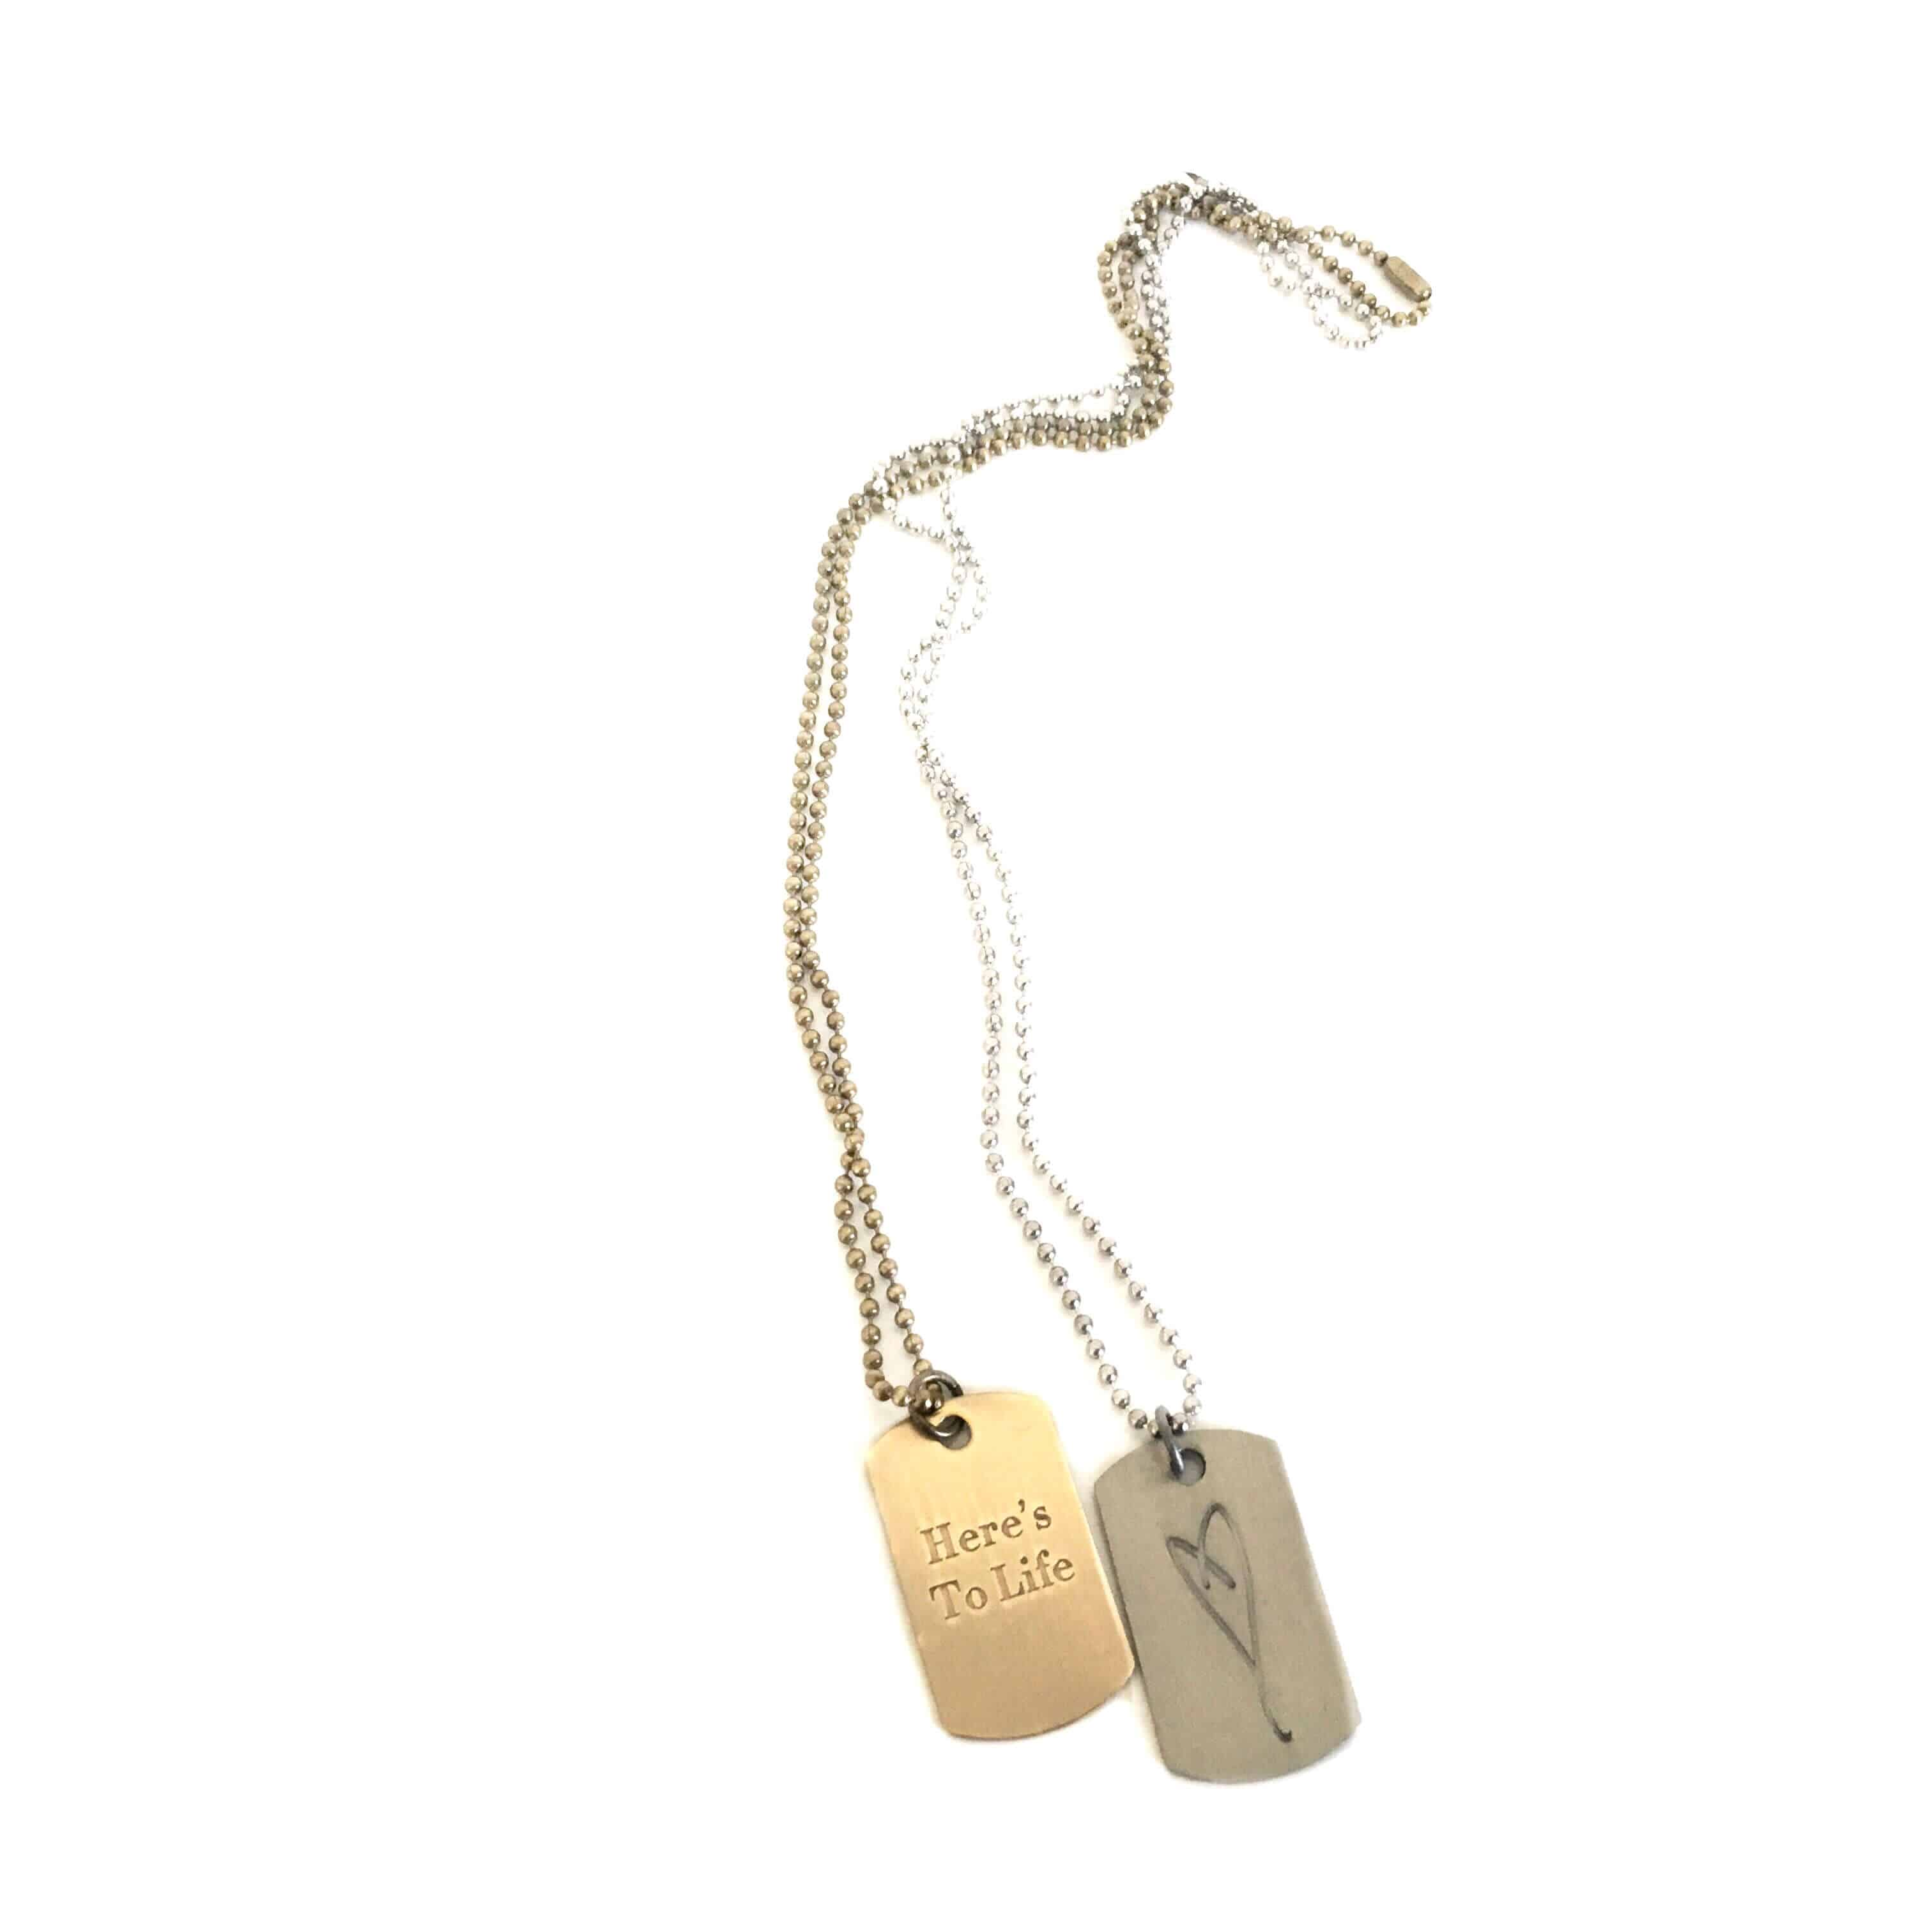 john johnlewis pdp lewis chunky com personalised buyibb ibb chain main necklace mini rsp heart gold at online